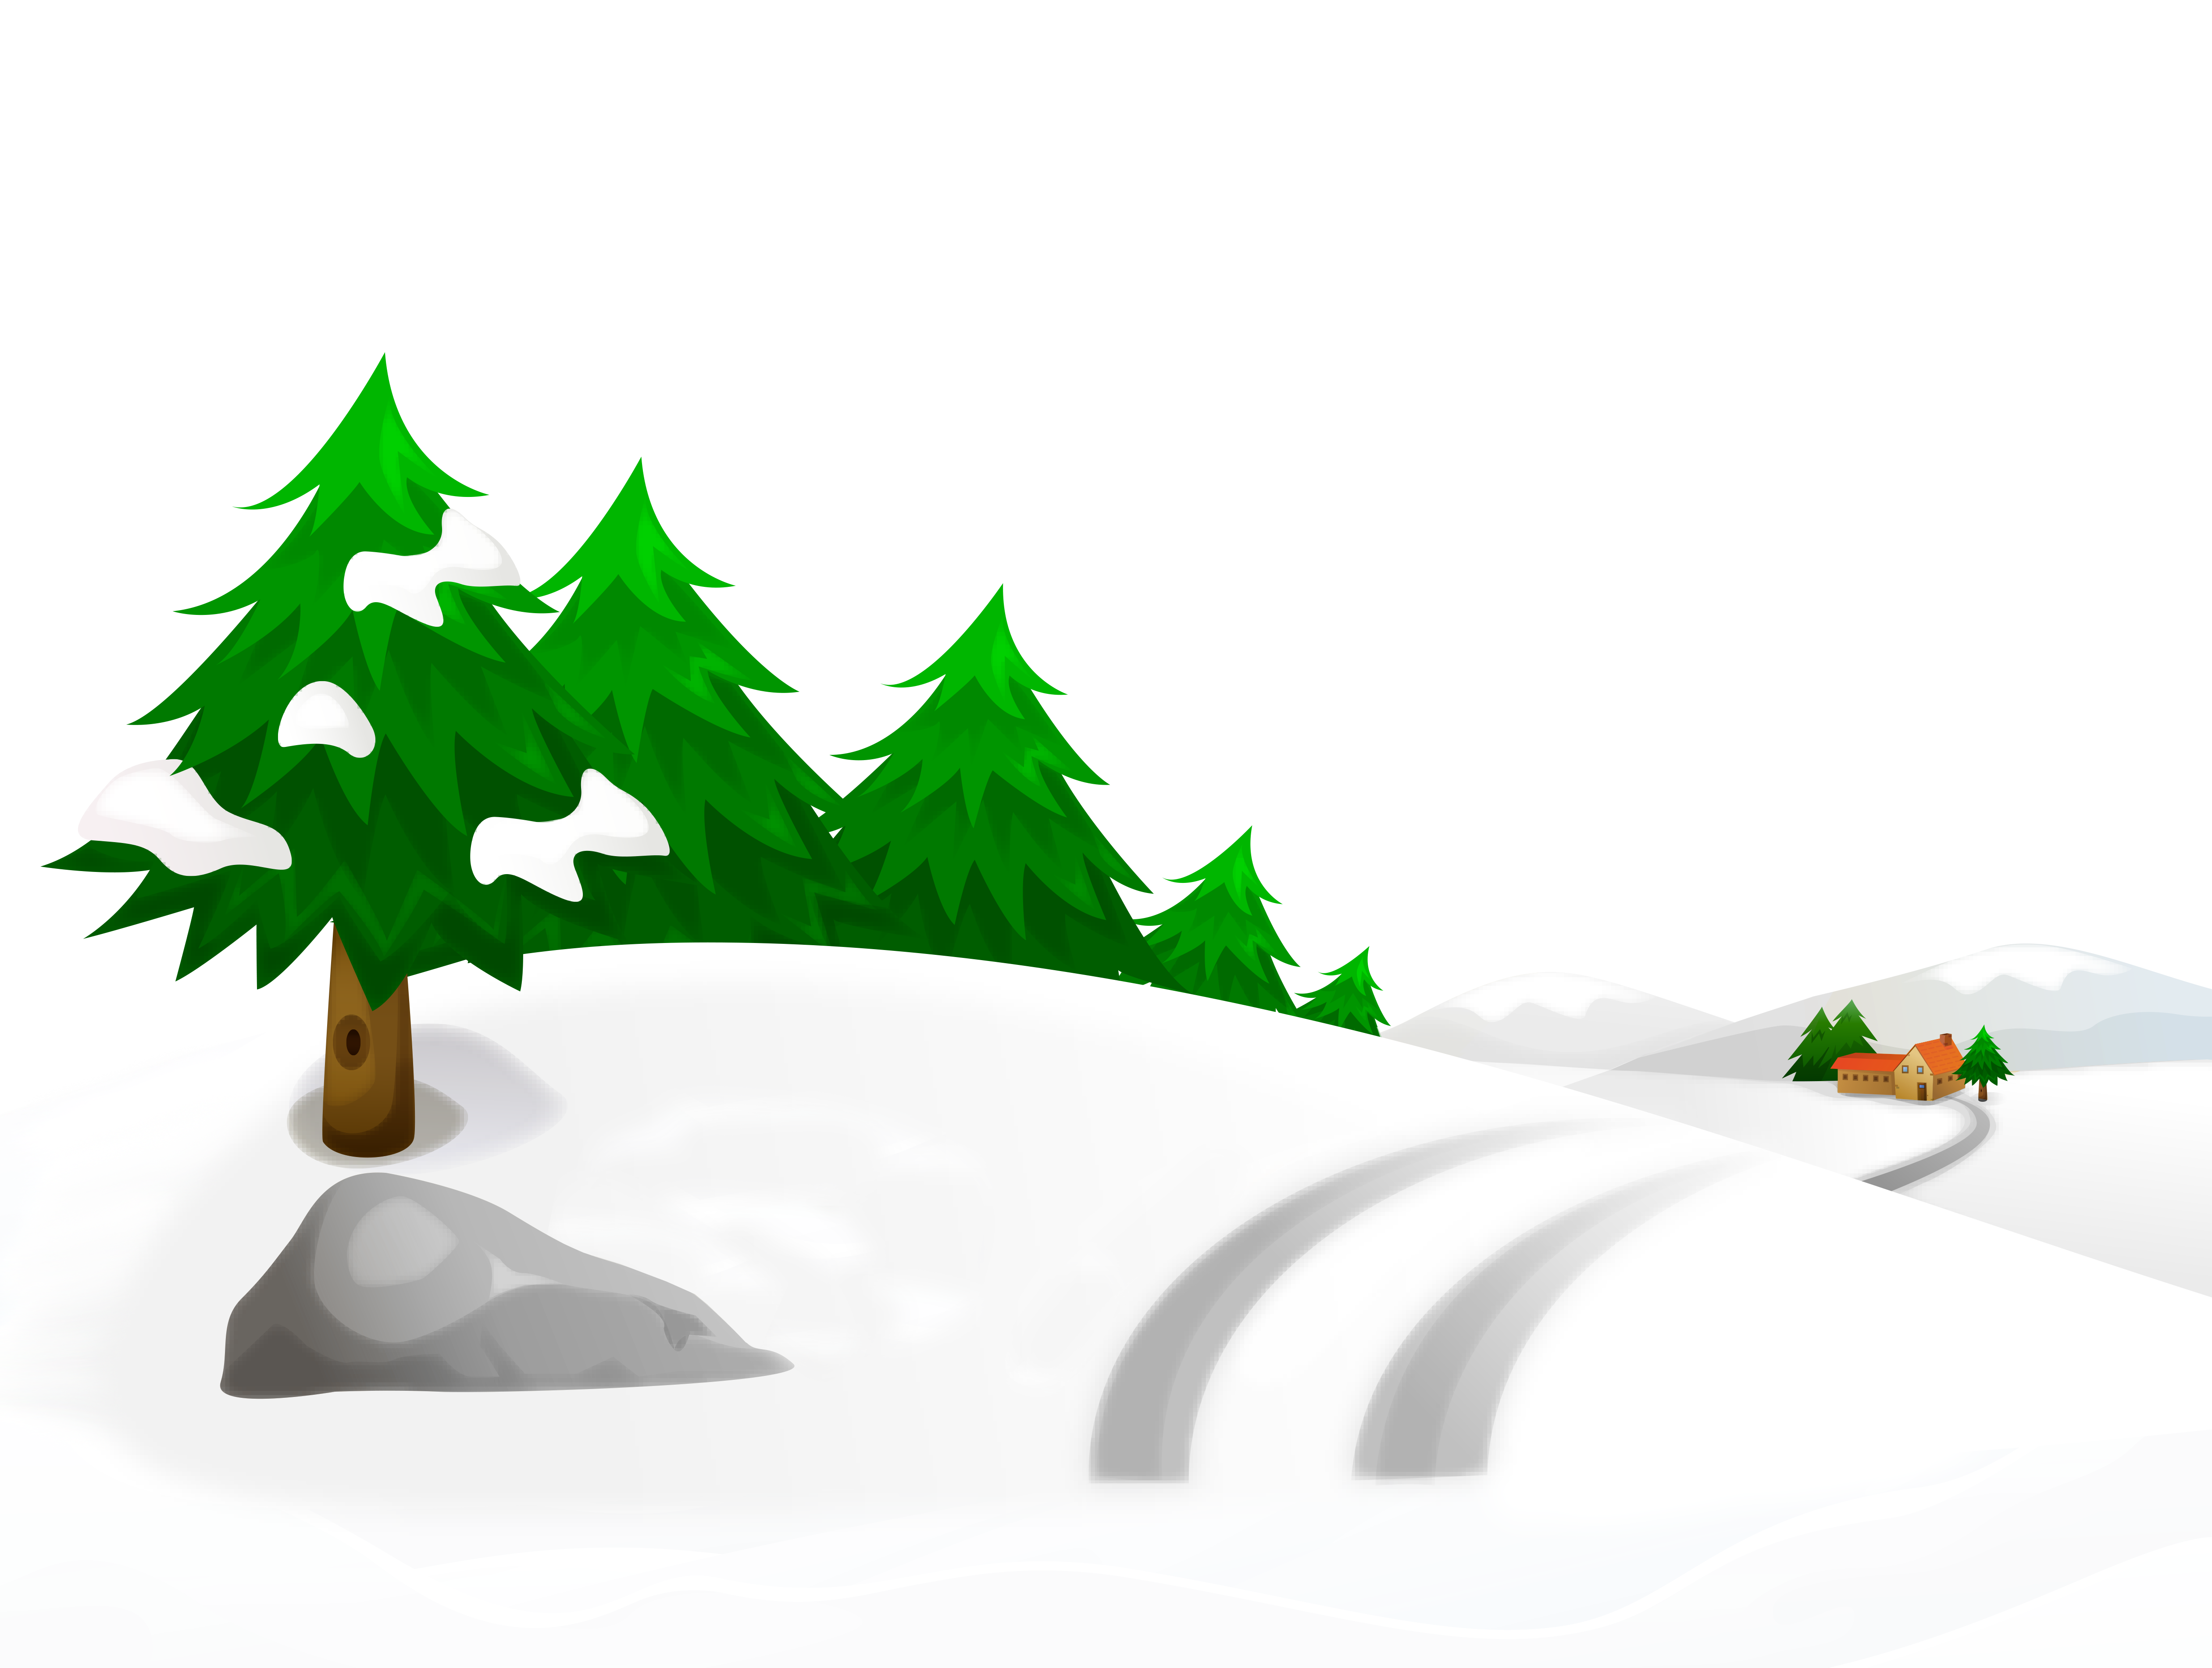 Trees and house clipart png transparent library Snowy Winter Ground with Trees and House PNG Clipart Image ... png transparent library